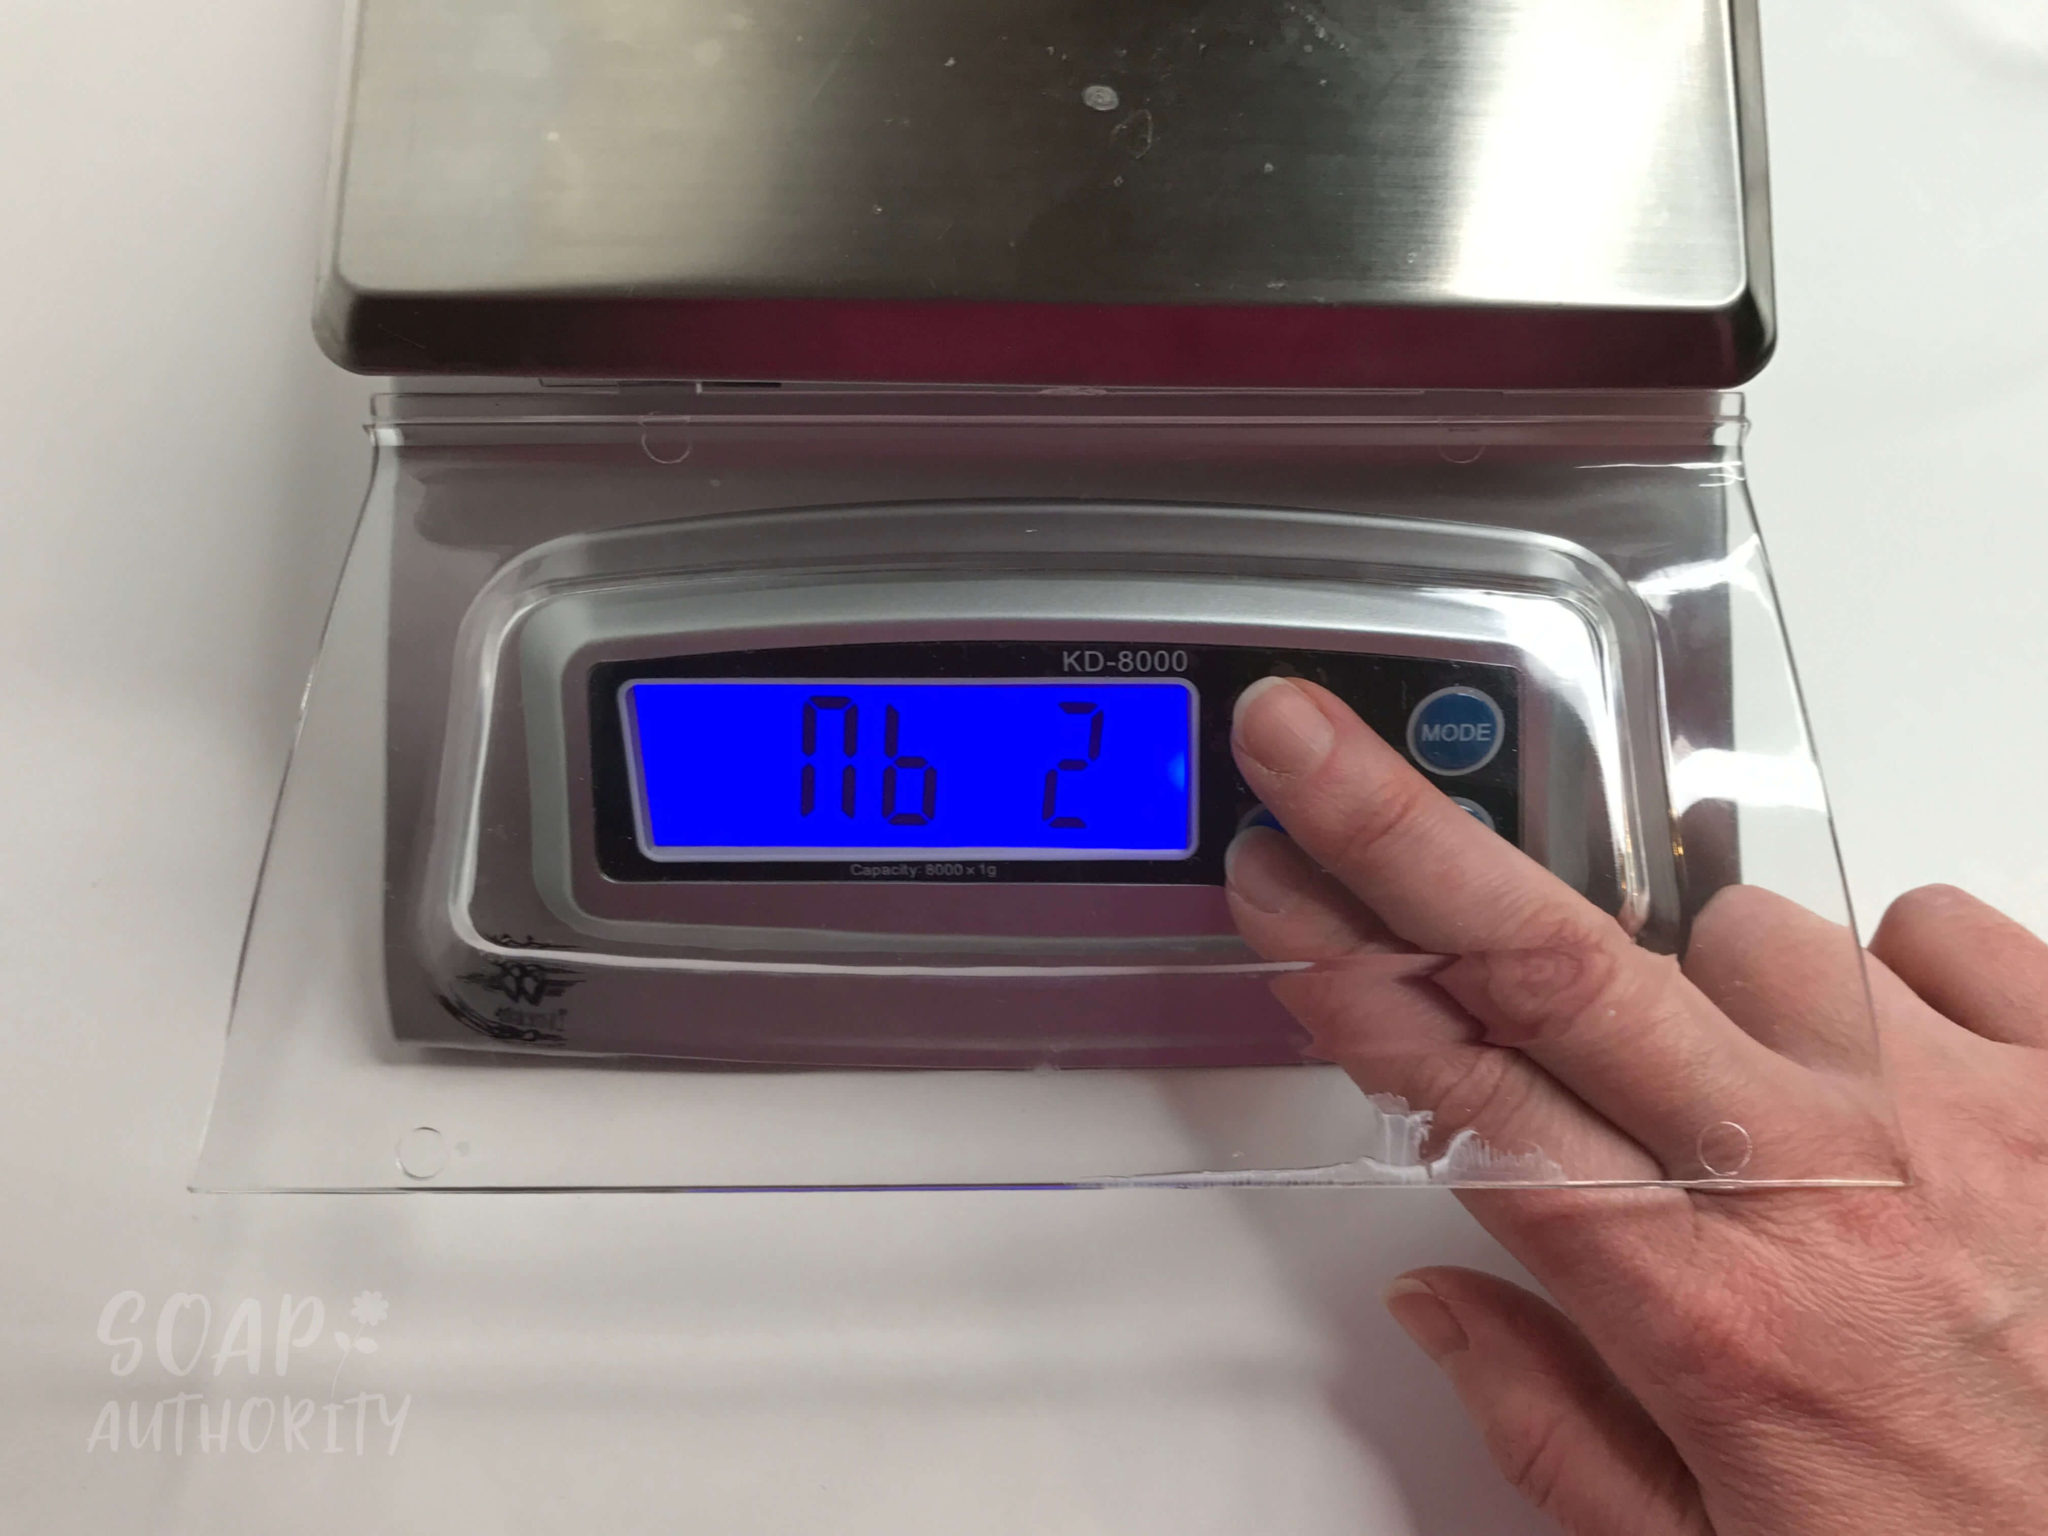 Preventing Your Soap Scale From Shutting OFF Automatically - Soap Authority: Preventing your soap scale from shutting off automatically will save you lots of time, frustration and even money! Follow my easy instructions to set up your scale properly.